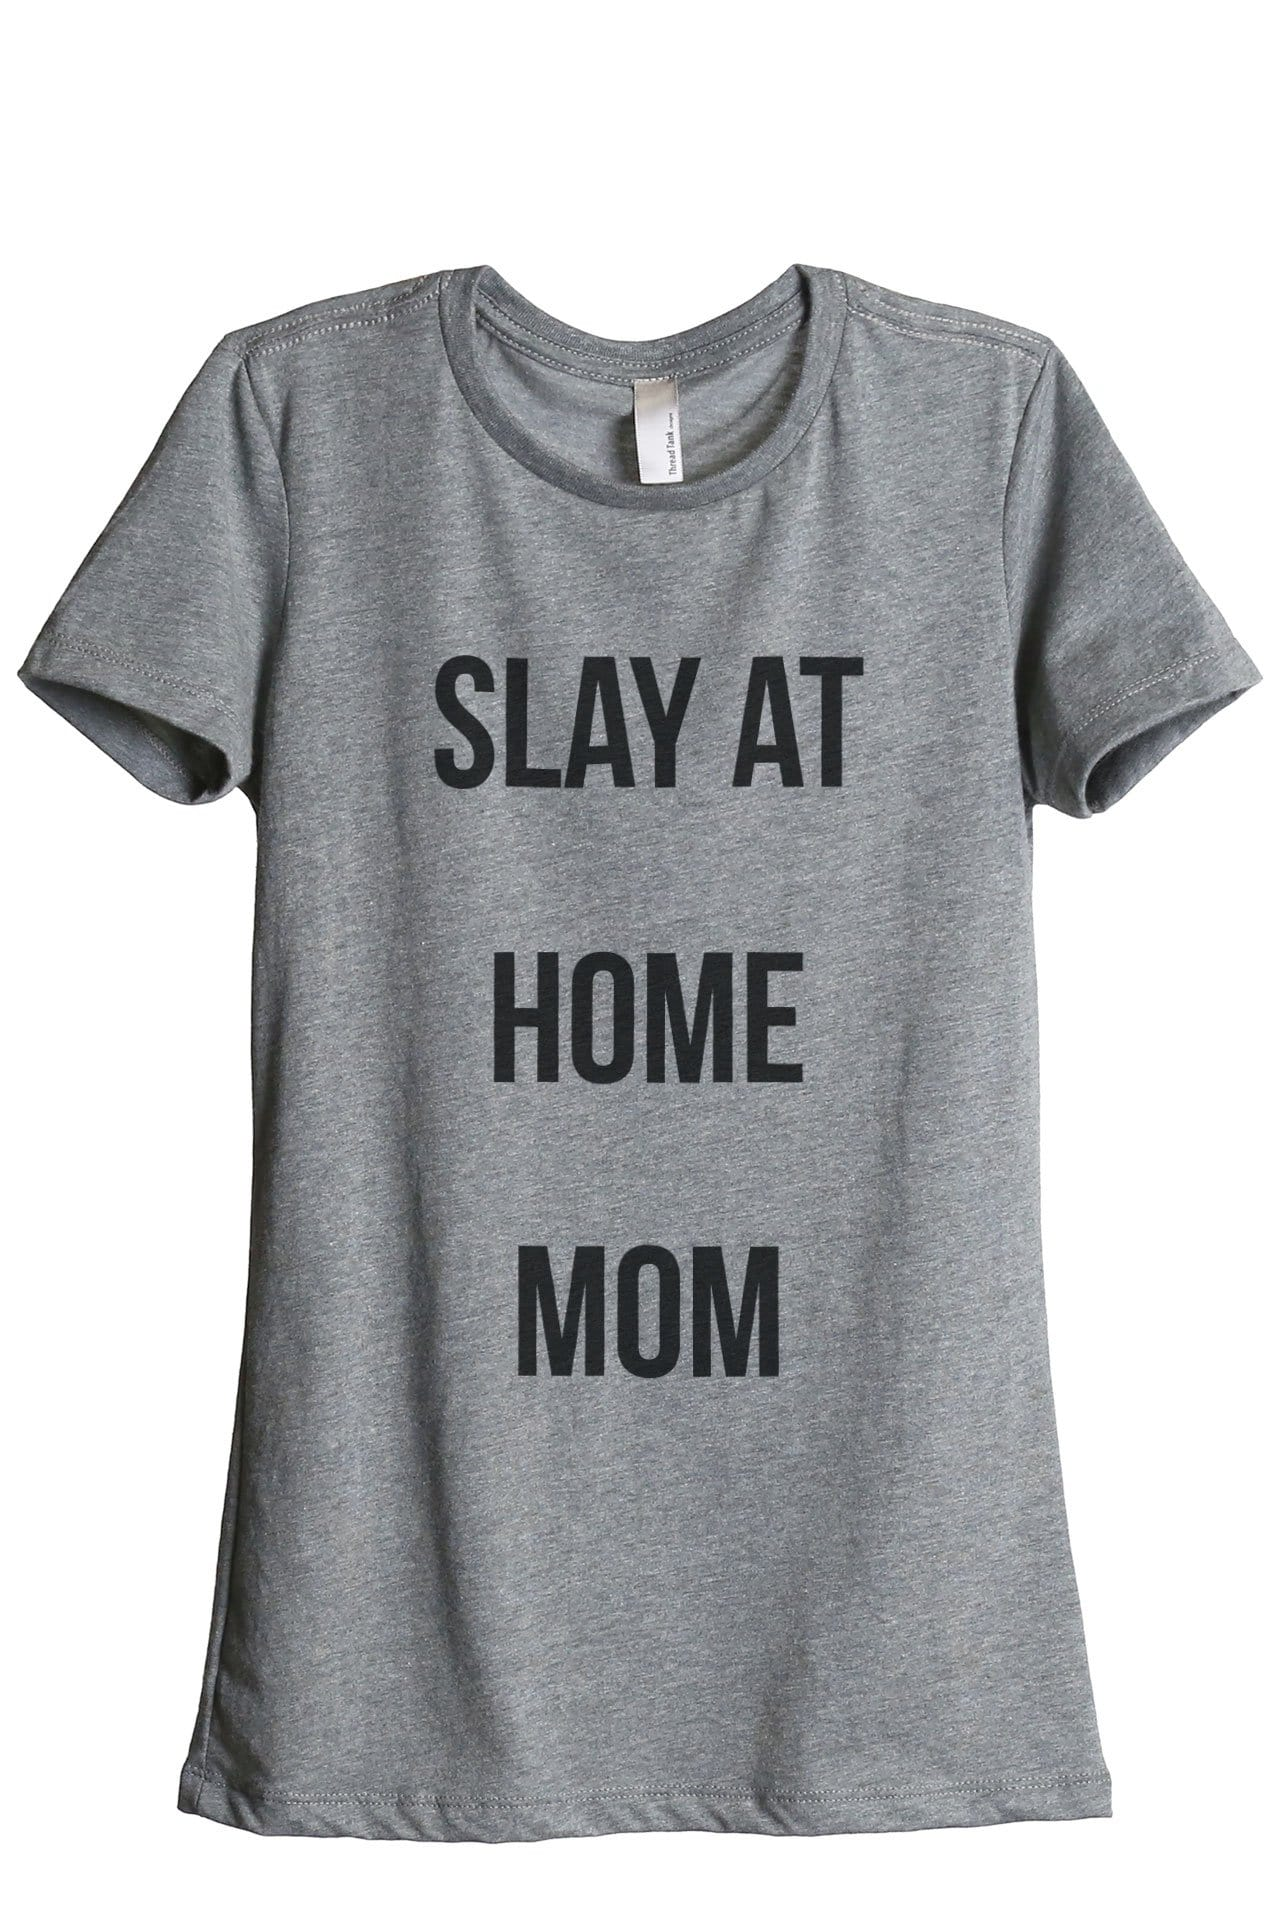 Slay At Home Mom Women Heather Grey Relaxed Crew T-Shirt Tee Top